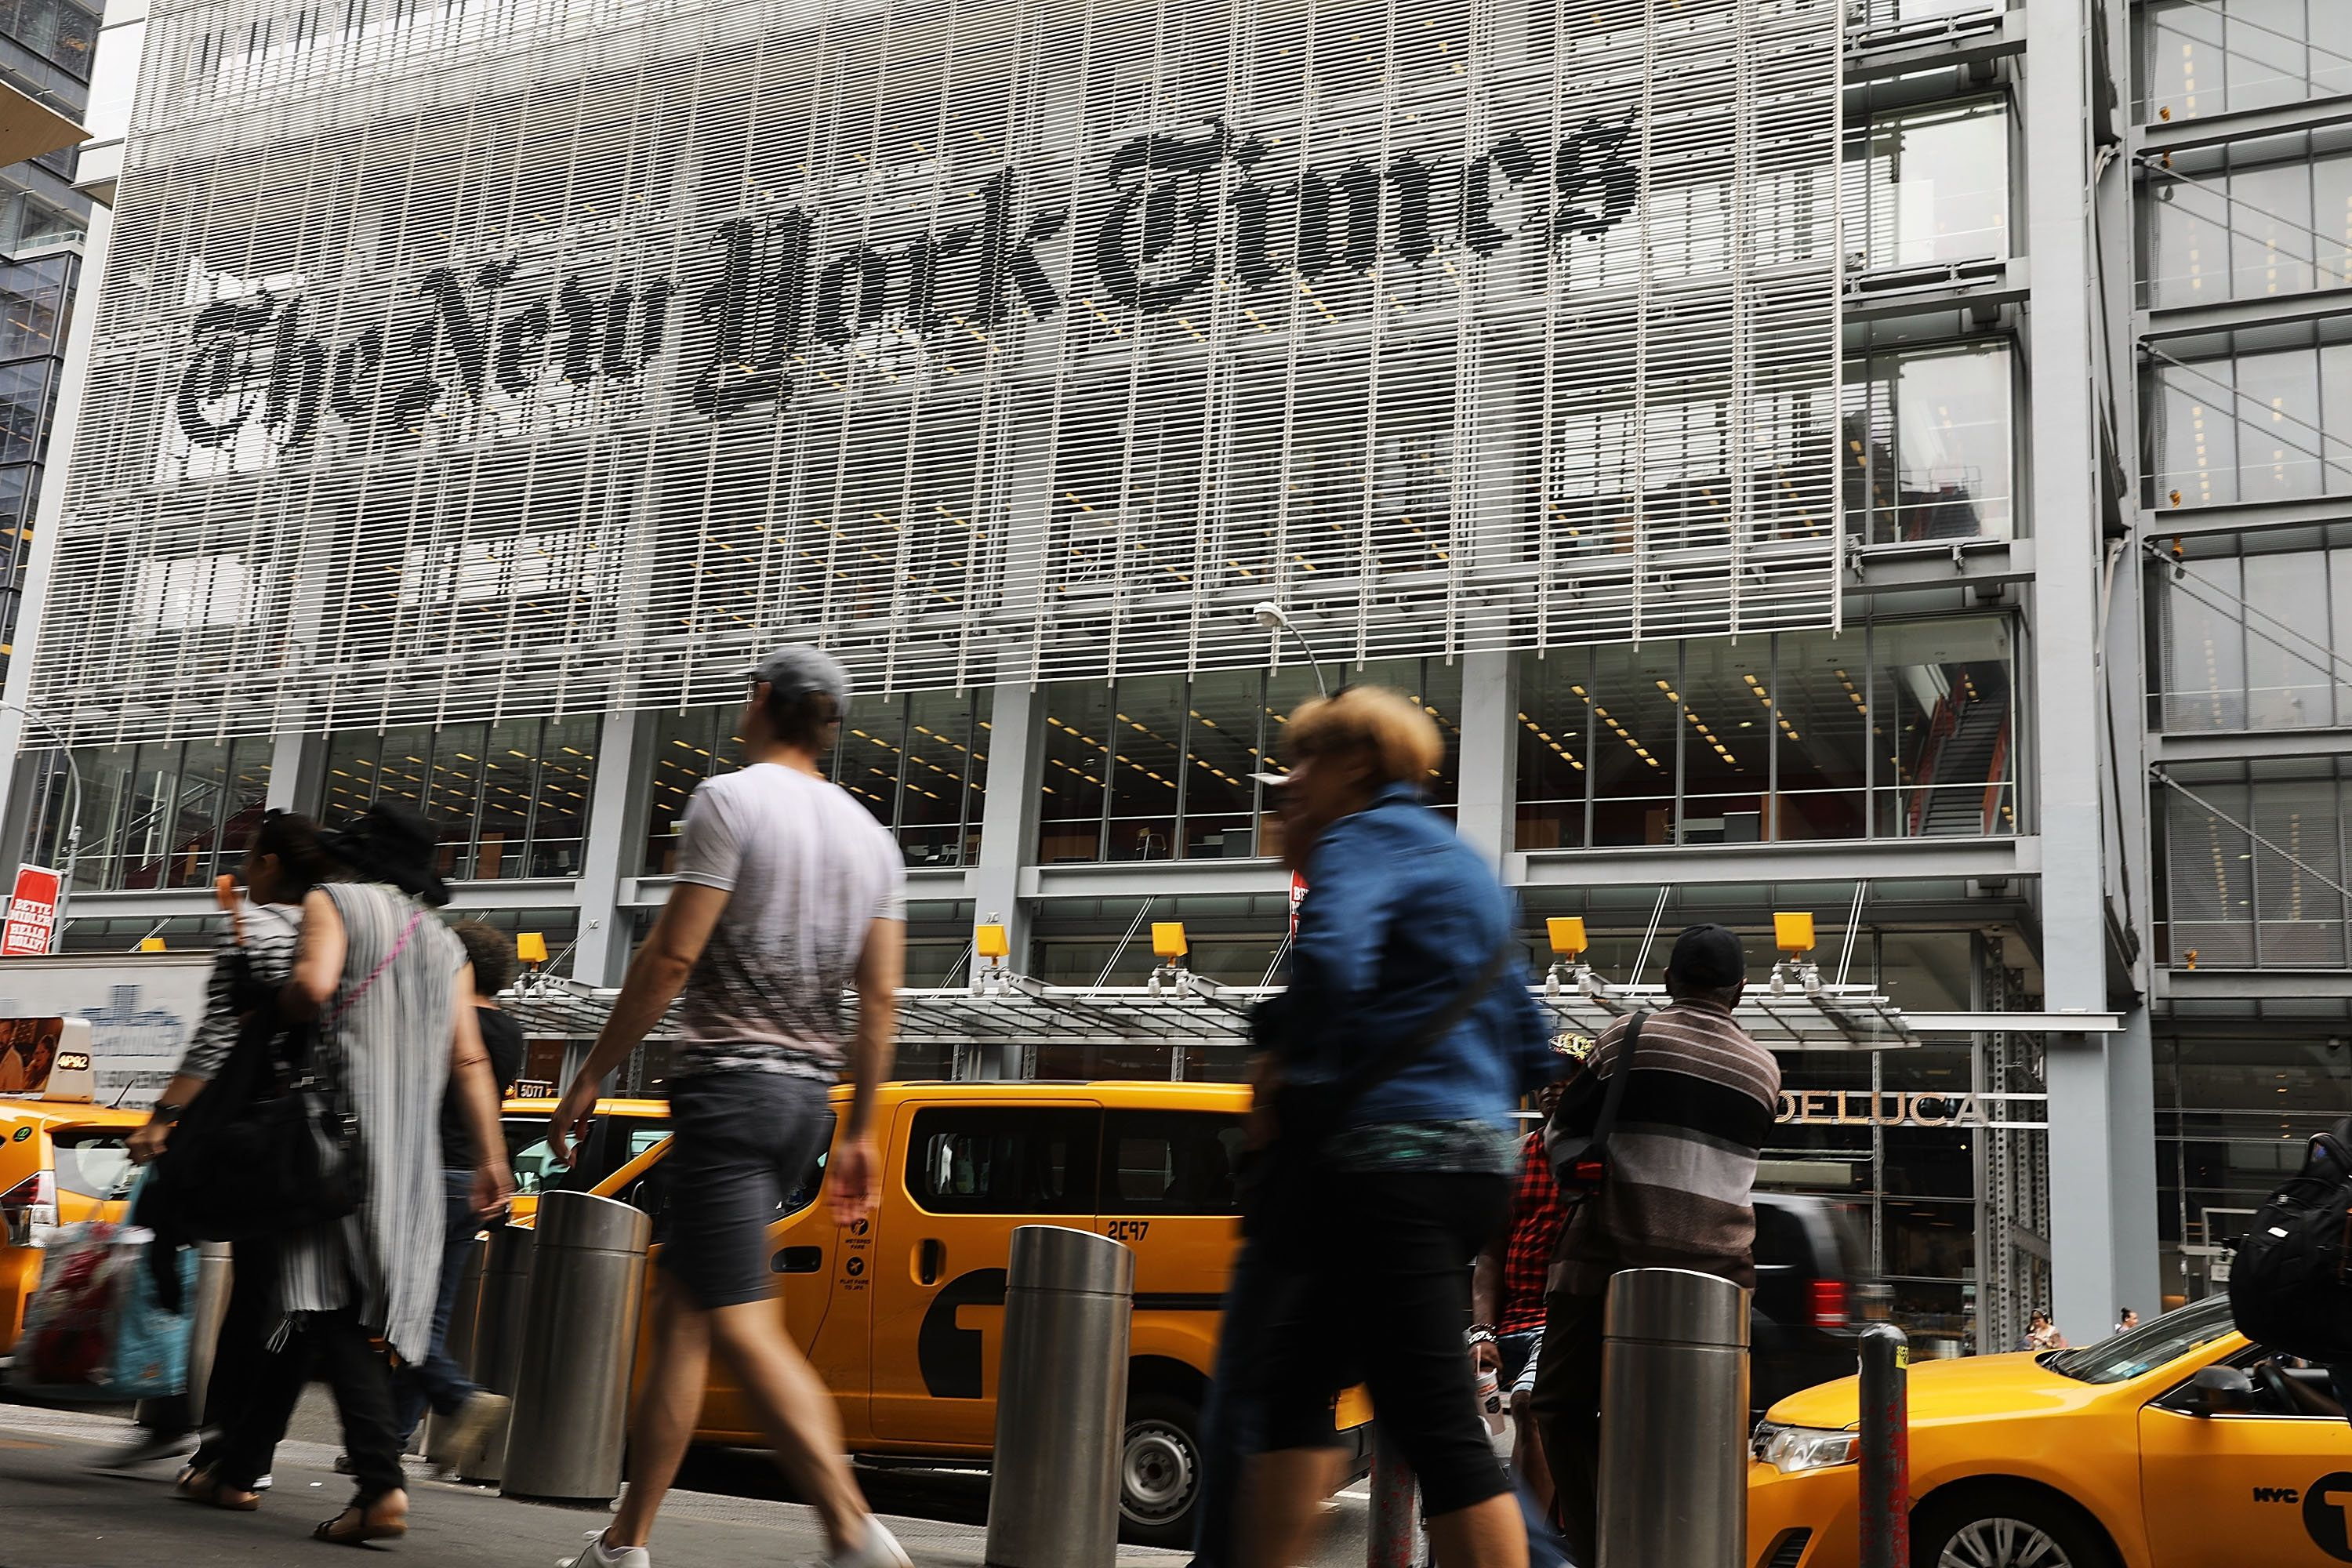 The New York Times staff has been in turmoil since a recent round of buyouts and other changes.